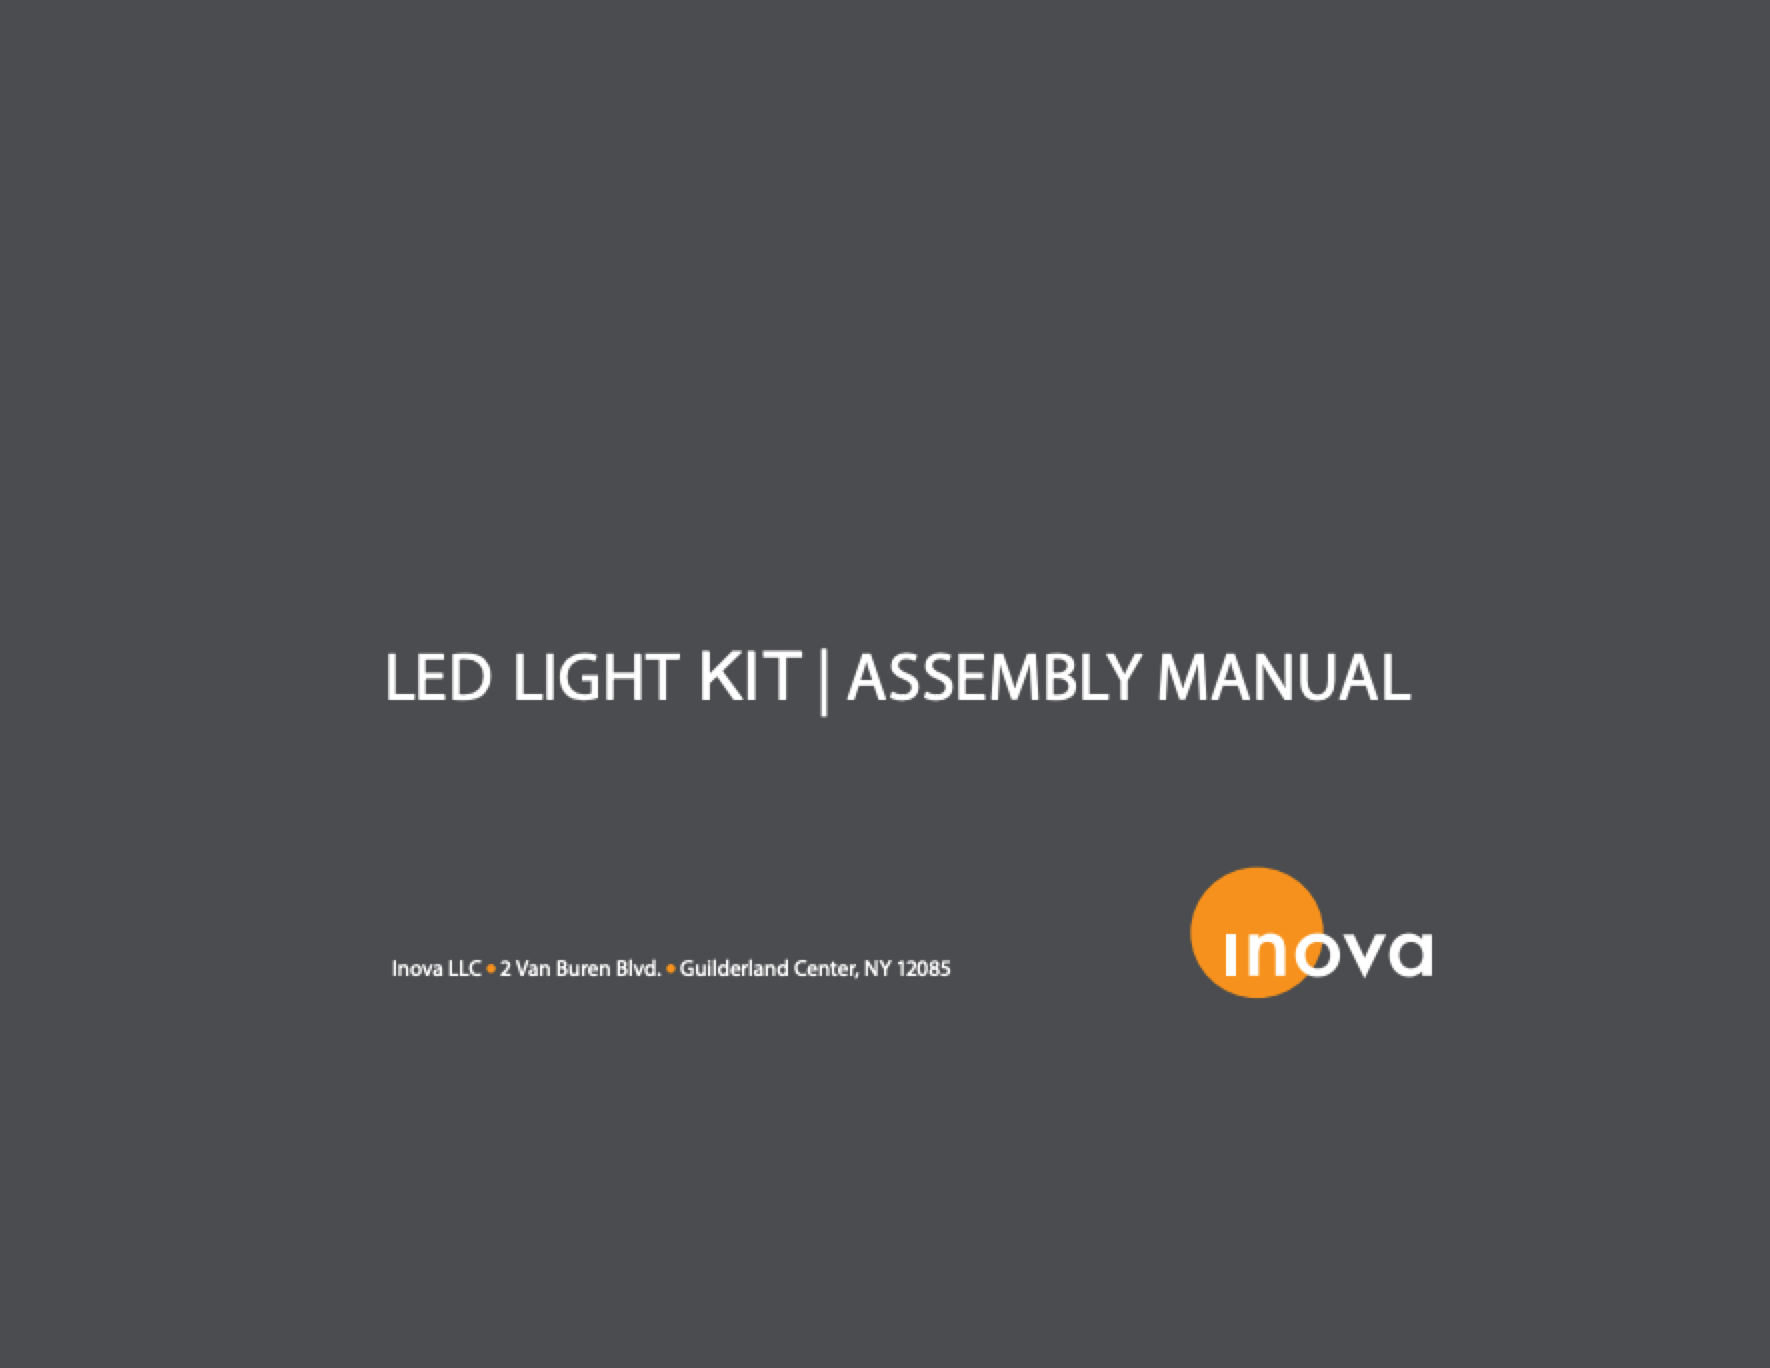 Inova LED Light Kit Assembly Manual